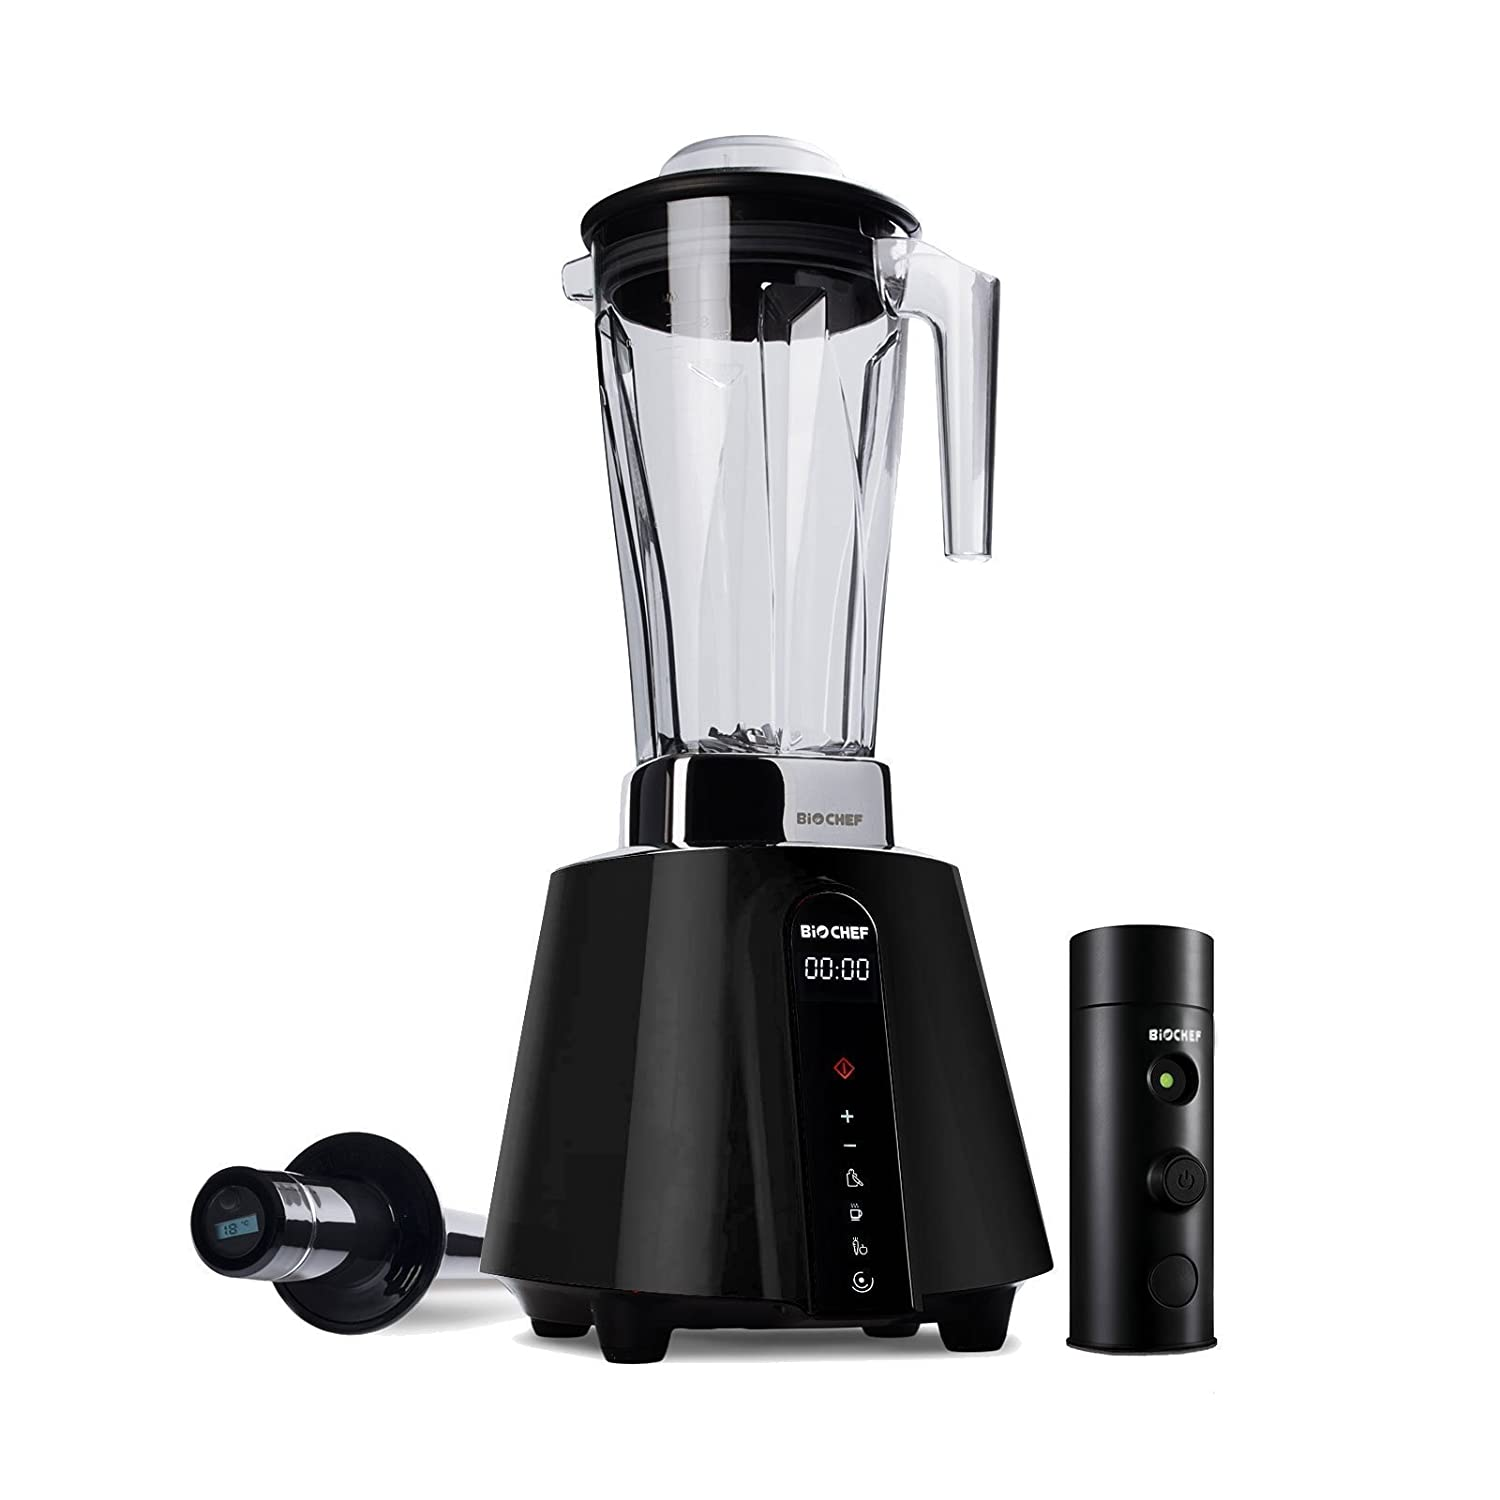 BioChef Living Food Vacuum Blender - 1680 Watt Motor, 2L BPA Free Jug - High Speed Blender with Temperature Tamper + Vacuum Blending Accessory with Vacuum Seal Bags (Black)